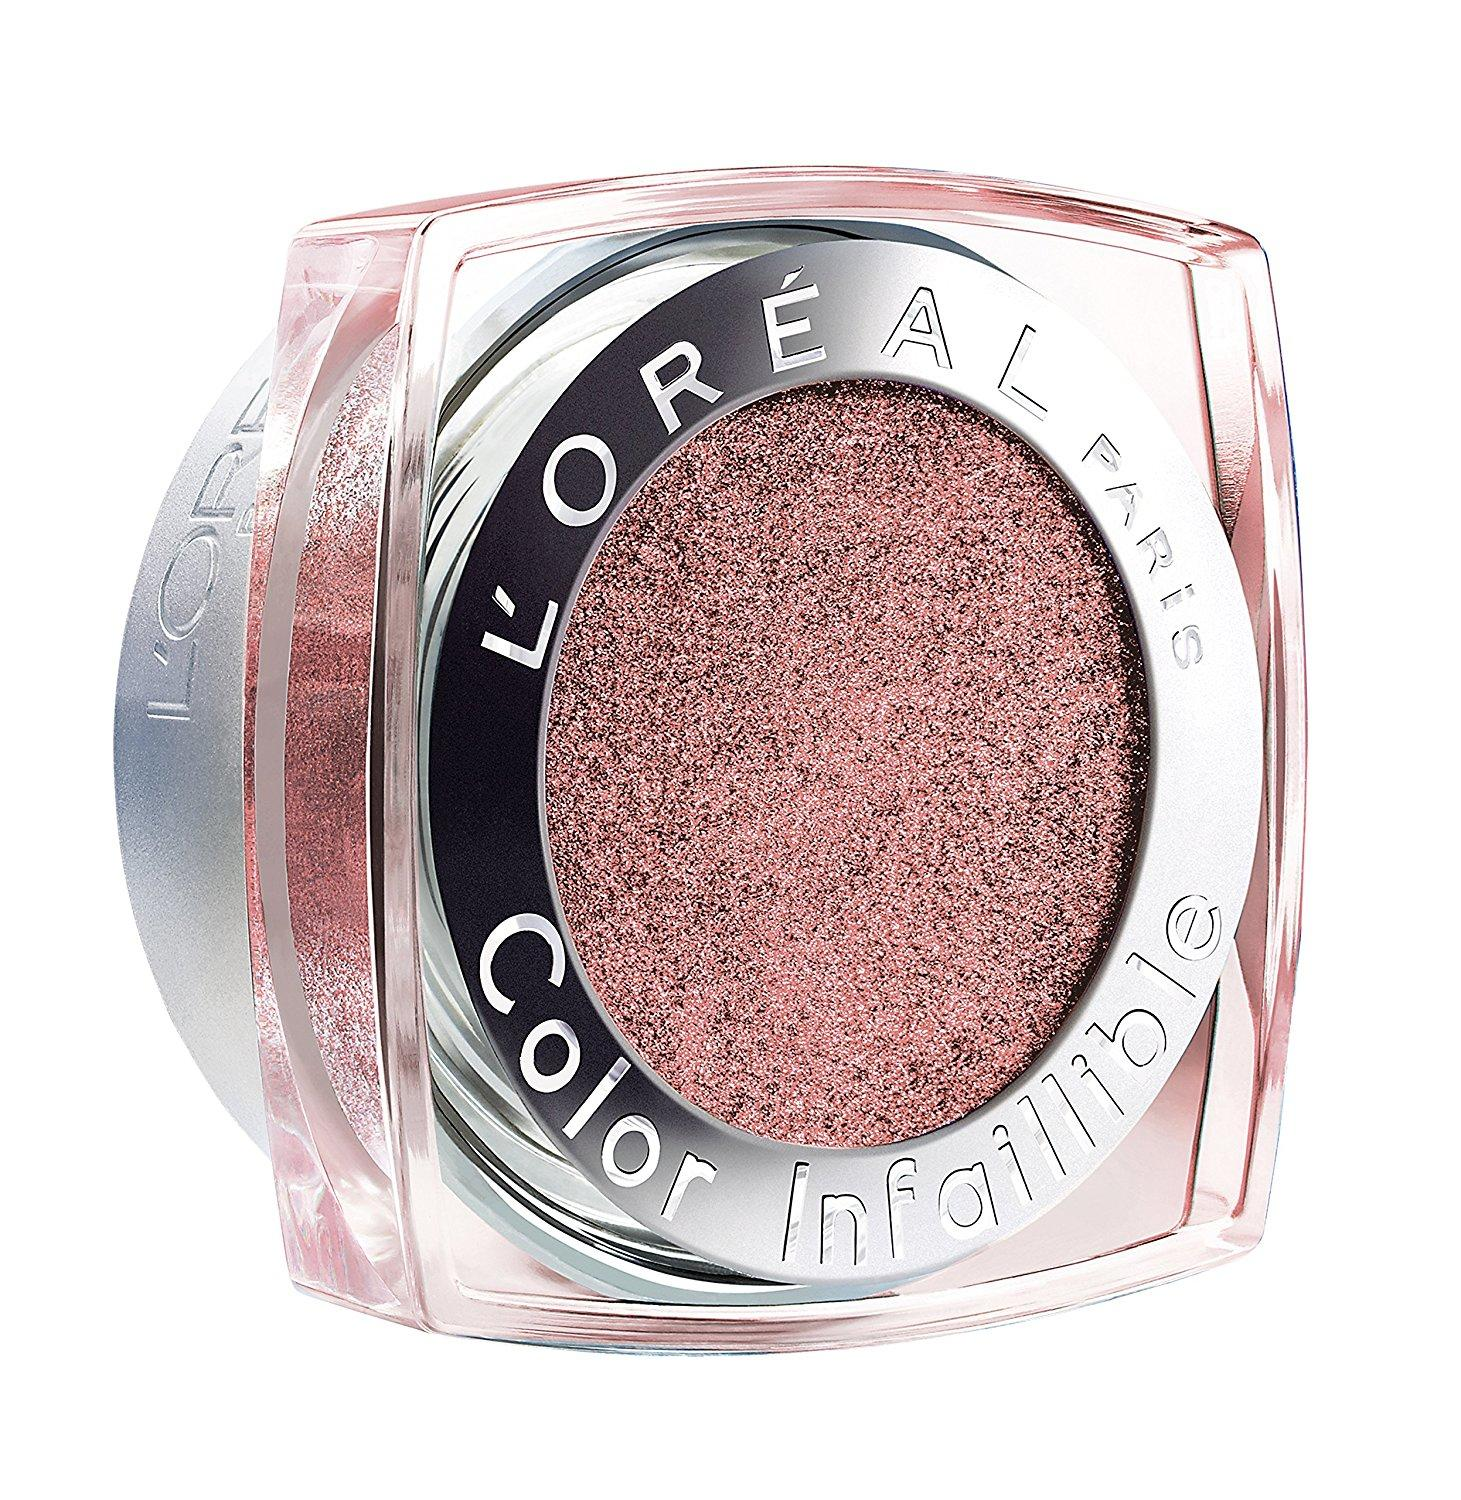 L'Oreal Color Infallible Eye Shadow 017 Sweet Strawberry